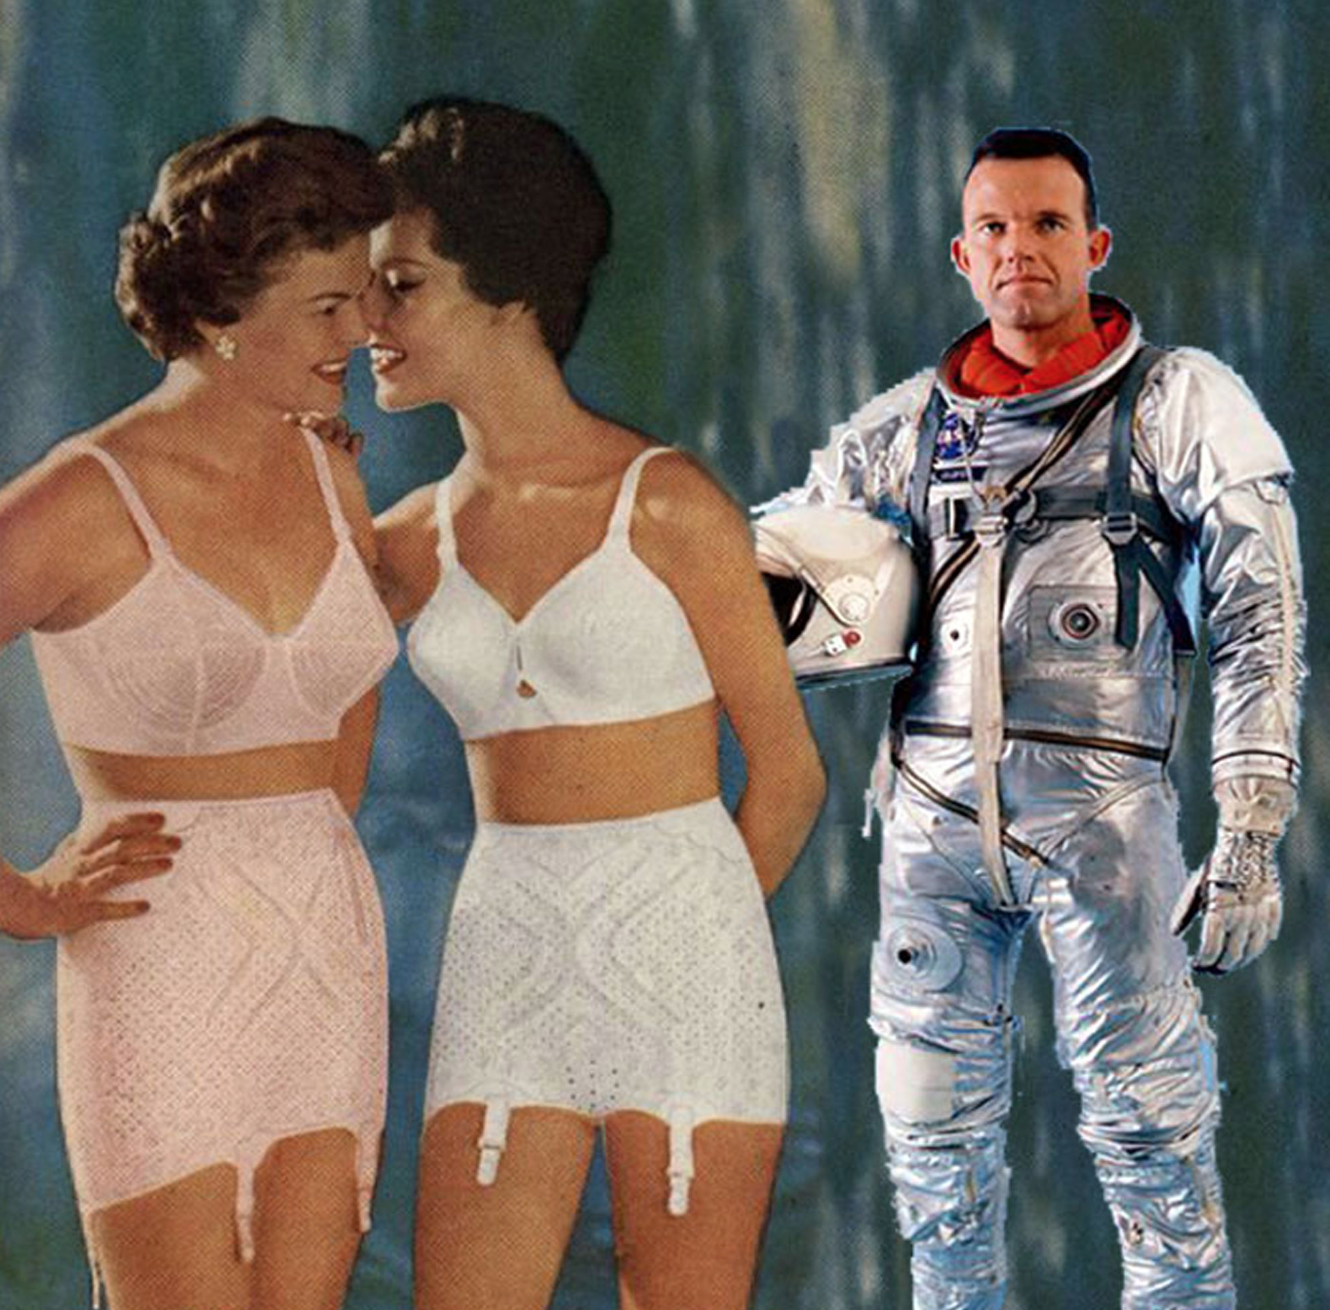 Bras And Girdles To Moon Landing